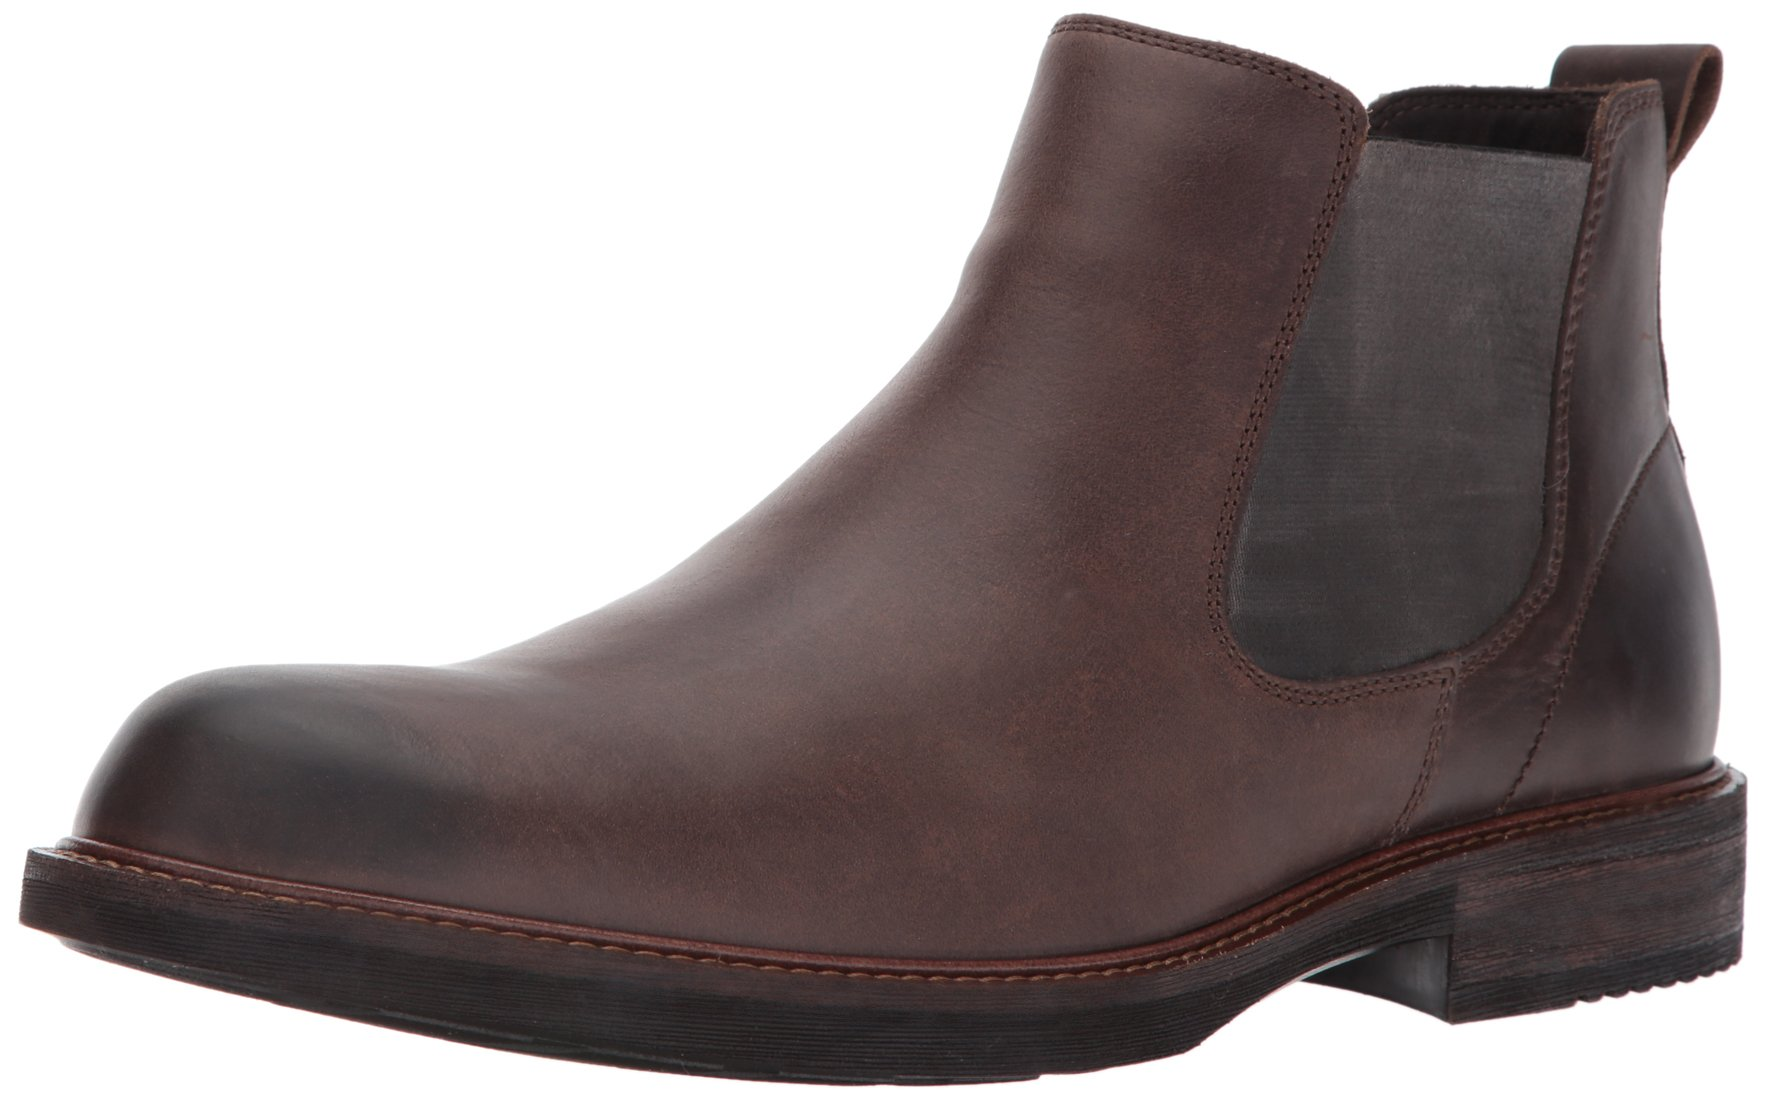 ECCO Men's Kenton Chelsea Boot, Coffee, 44 EU/10-10.5 M US